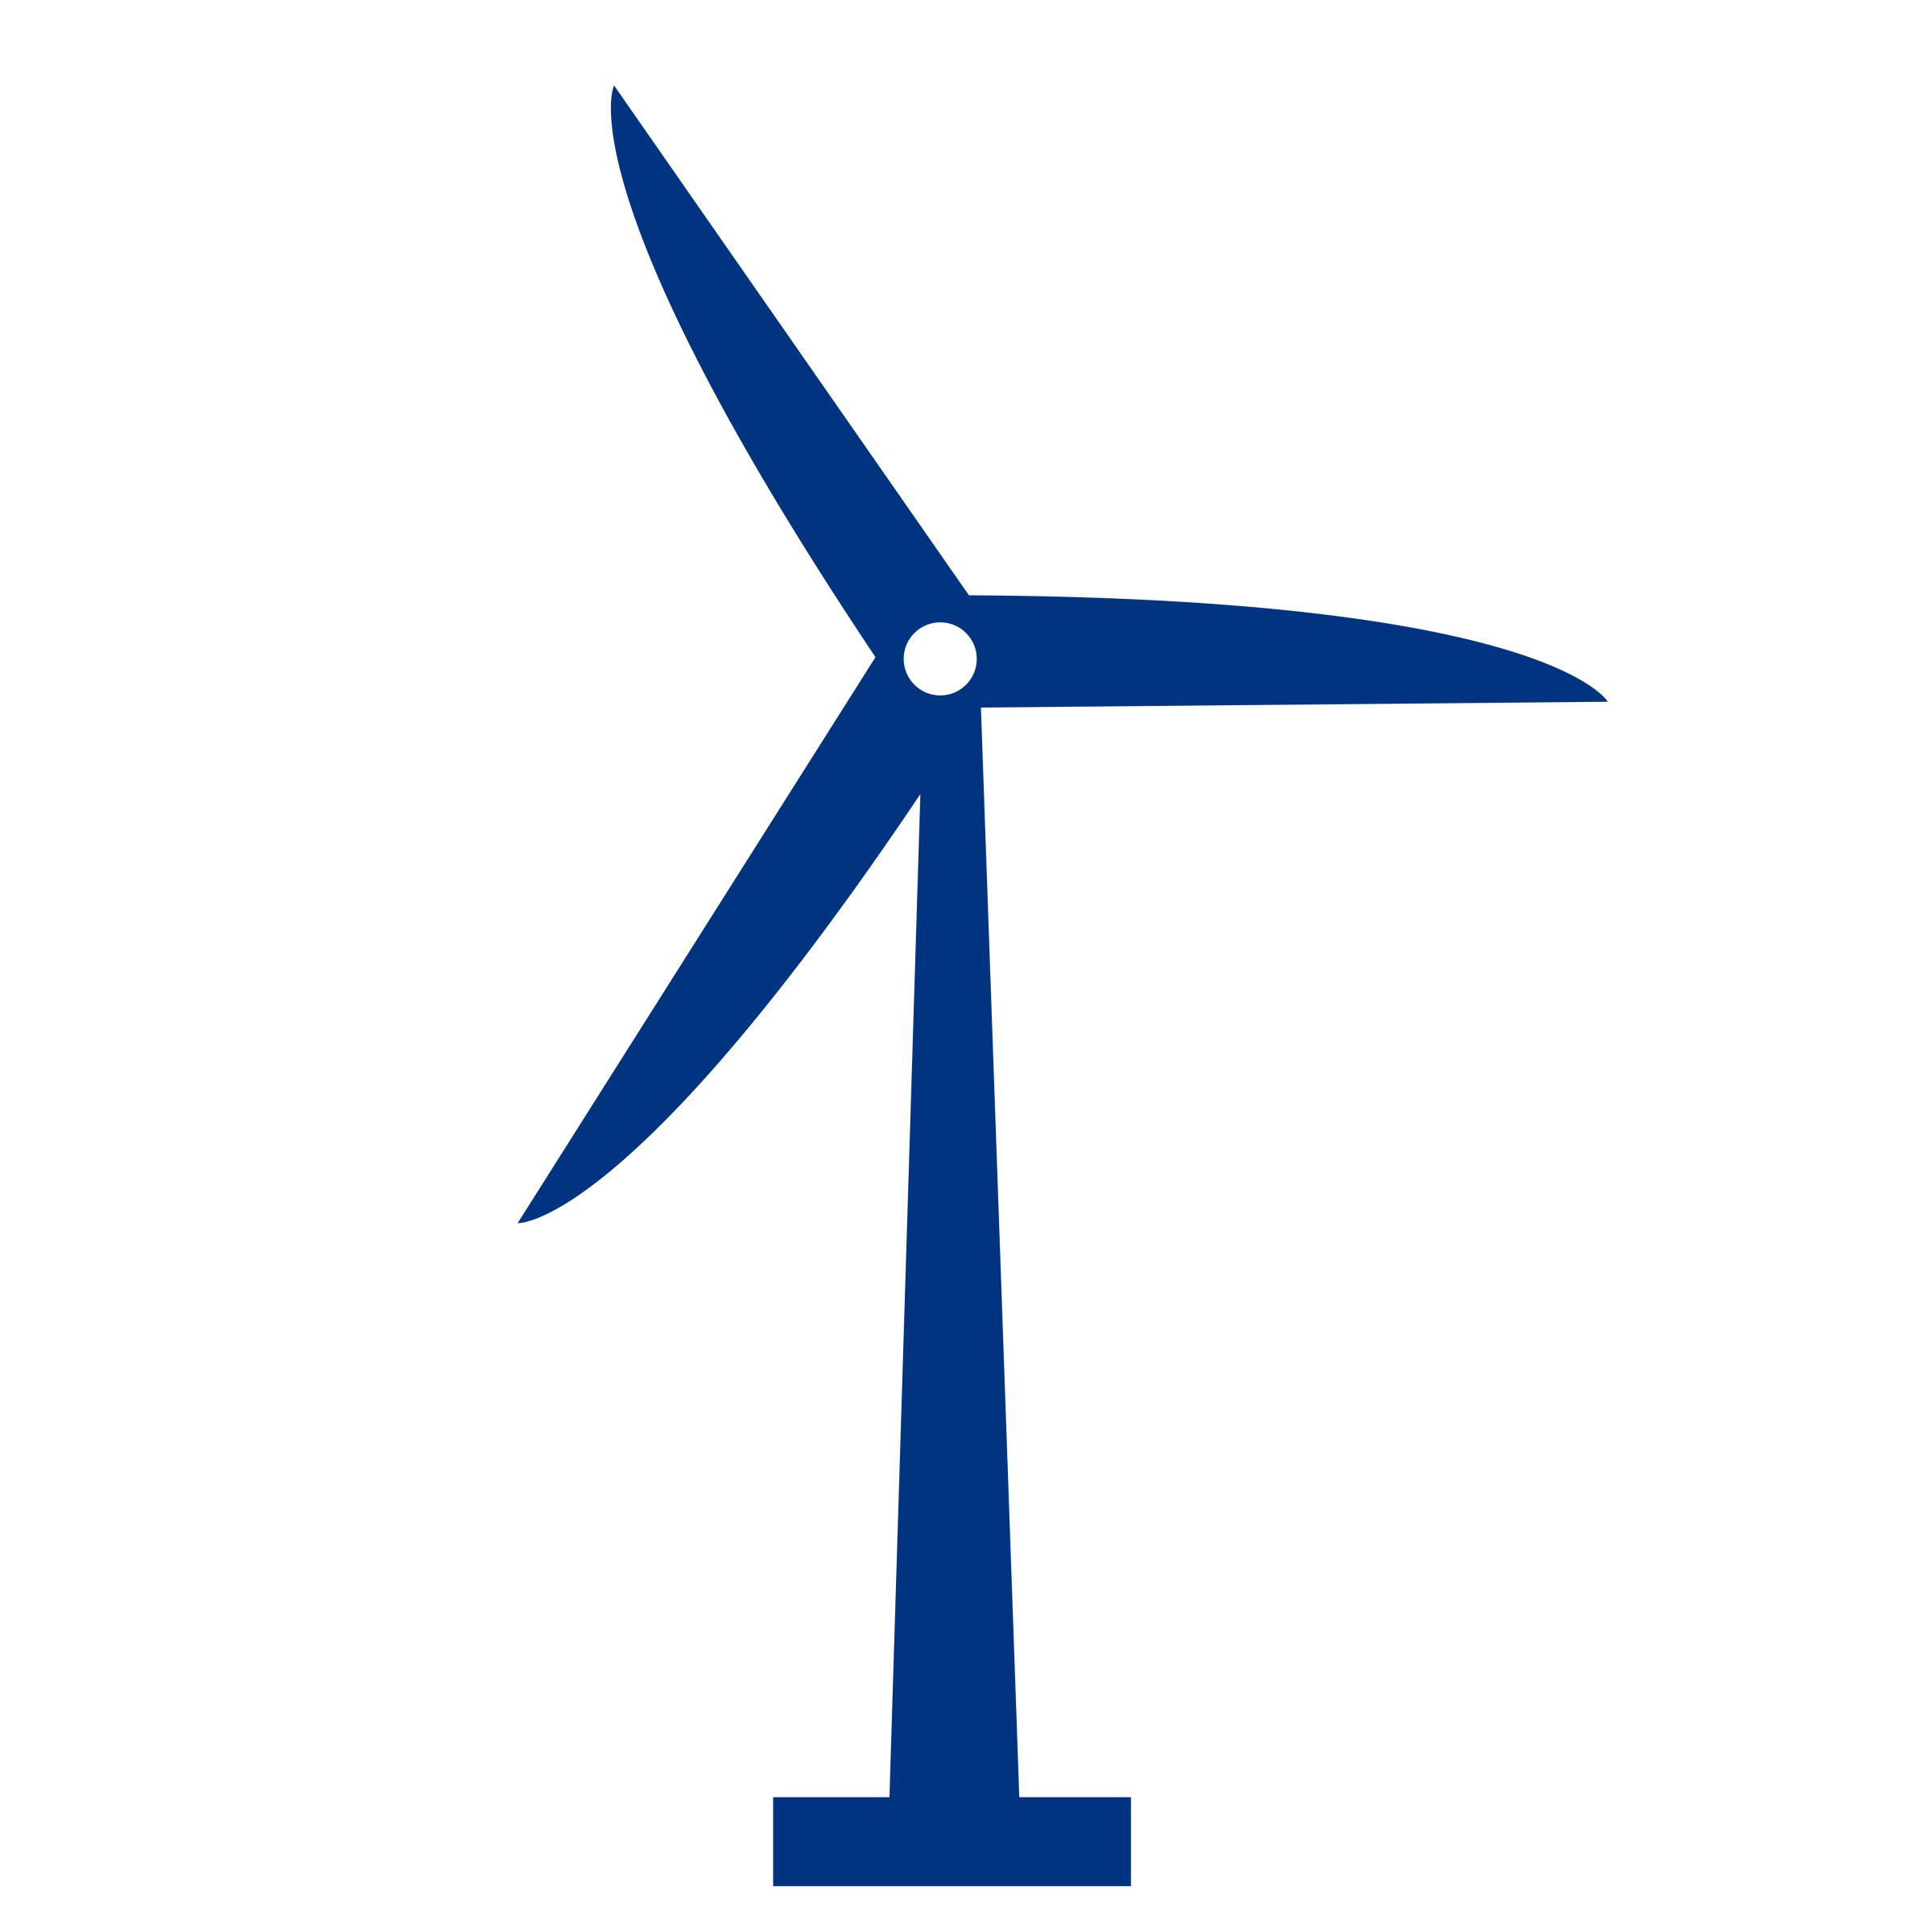 Wind mill png. Windmill energy sources icons